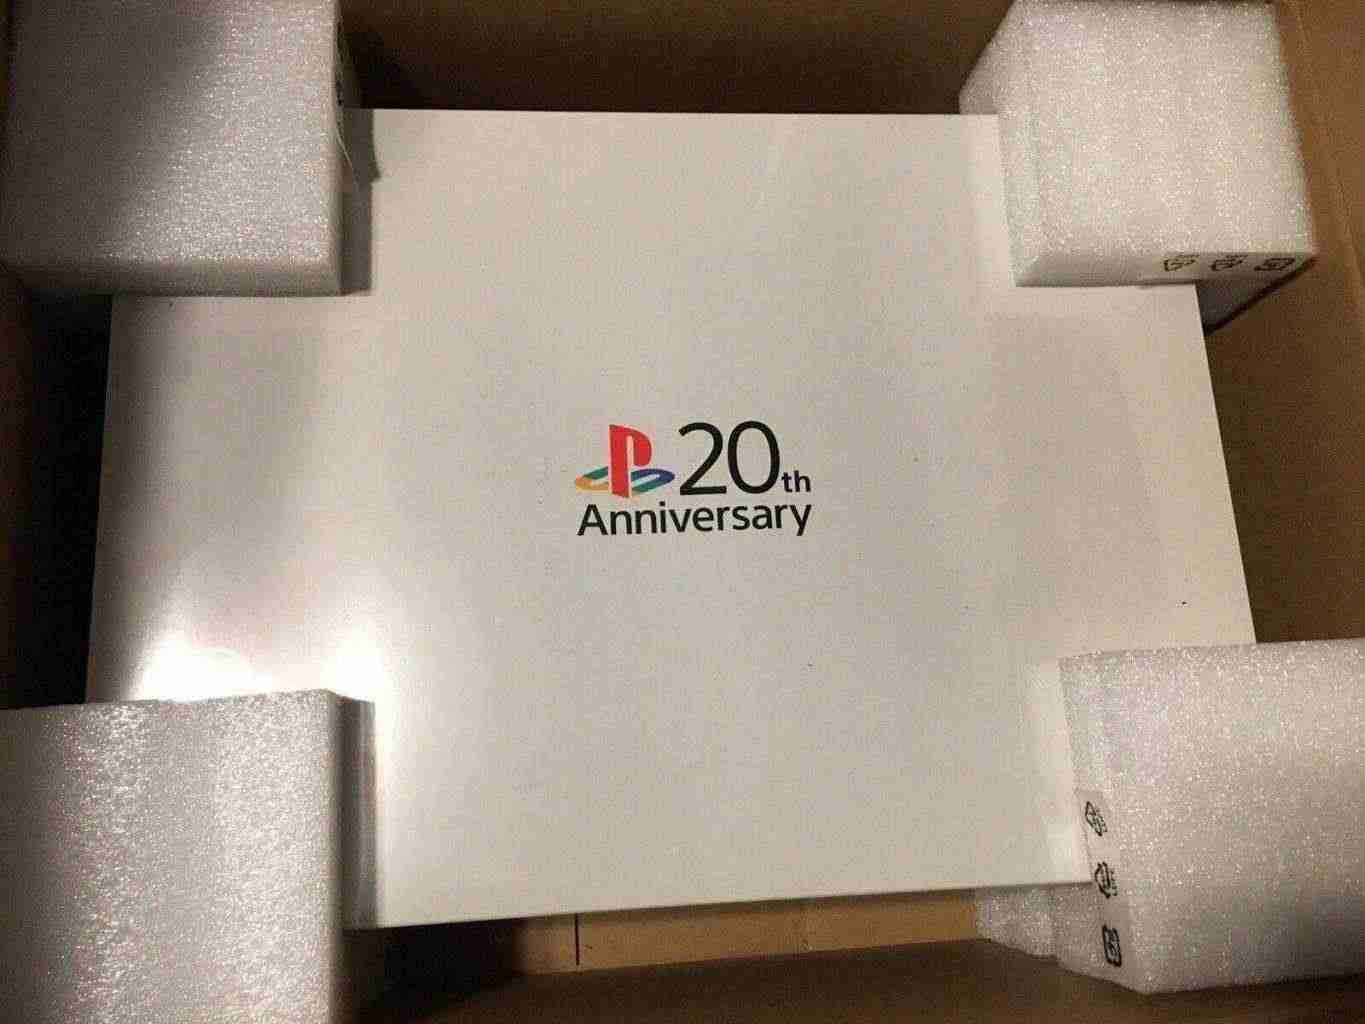 Sony PlayStation 4 (PS4) 20th Anniversary